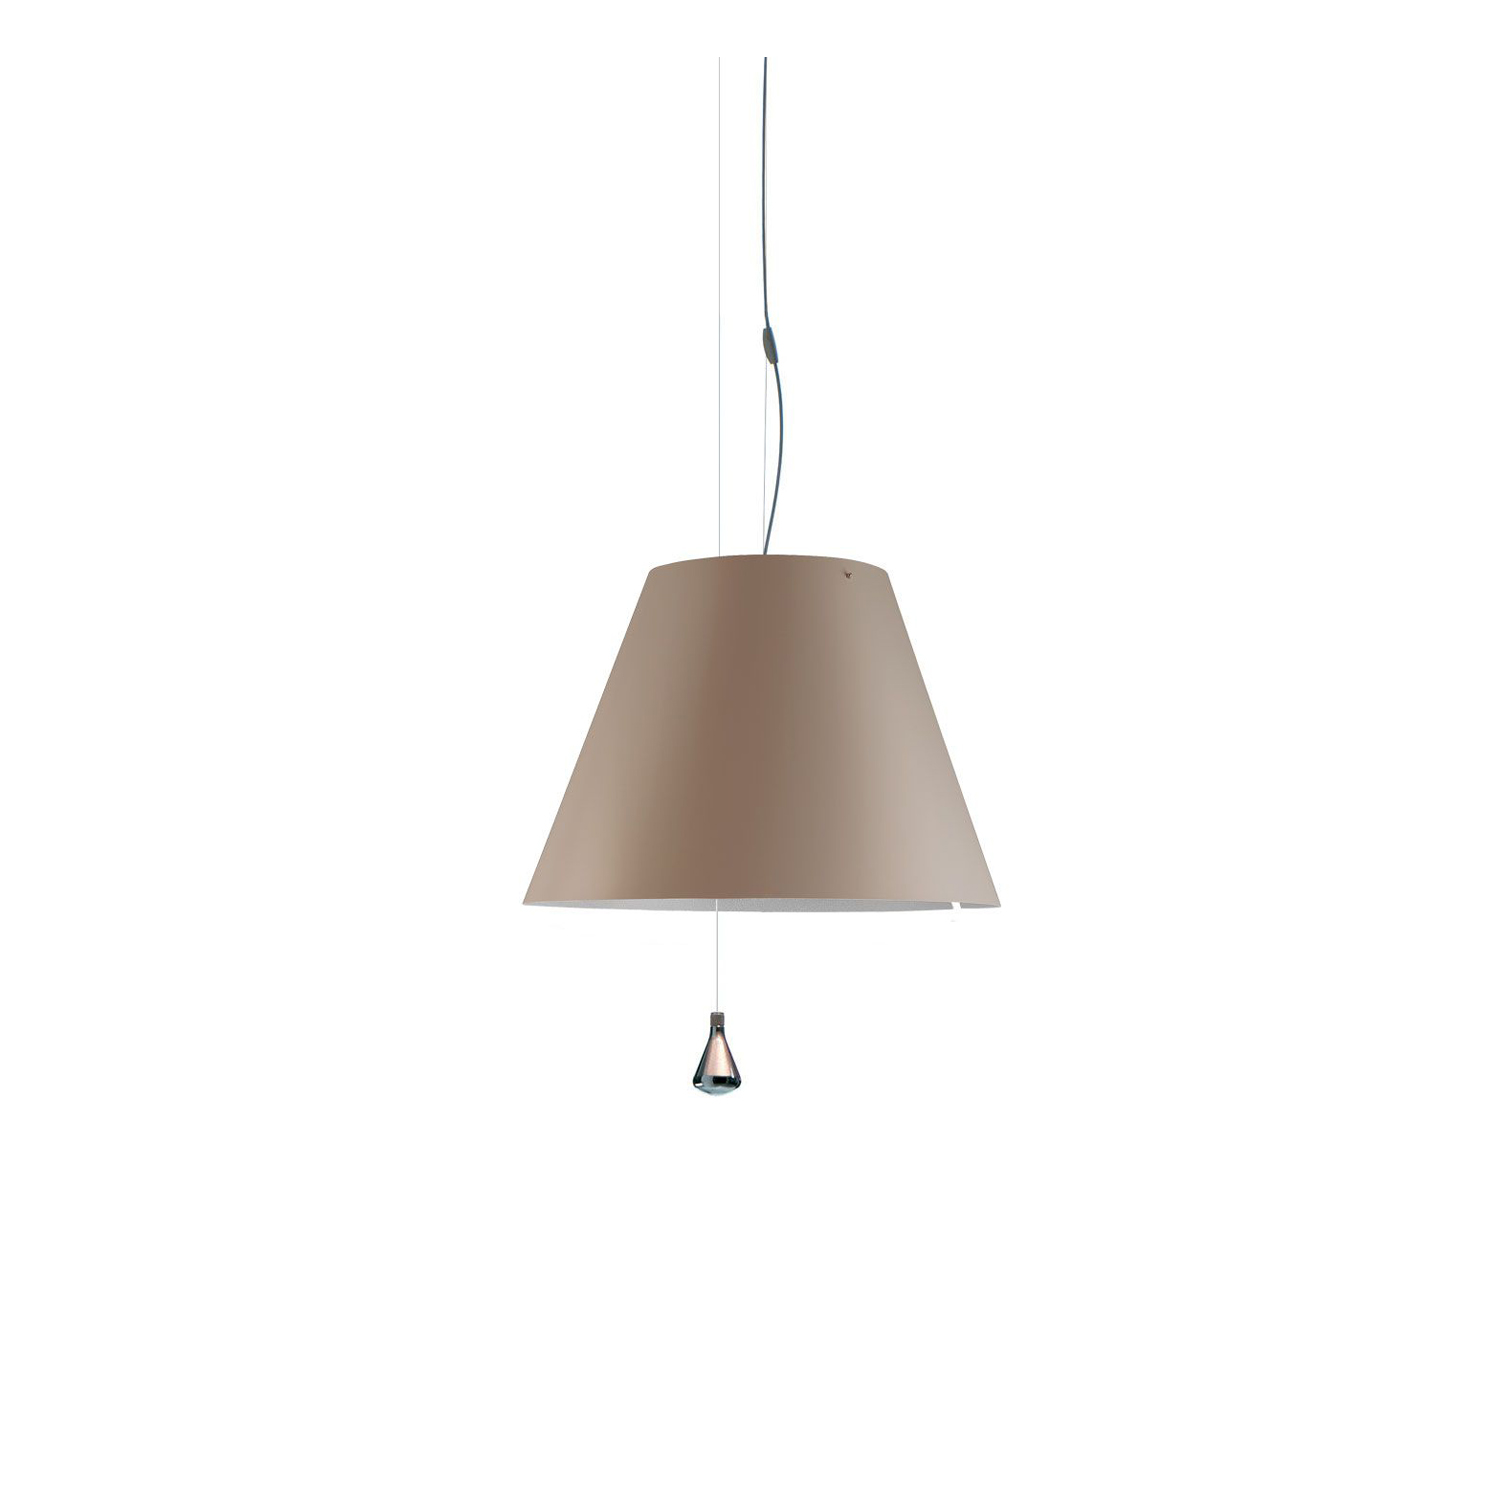 Costanza Up and Down Suspension Lamp - Elegant and light, this lamp emits a pleasant warm light through a silk-screened polycarbonate shade. The lamp's height may be adjusted by means of a characteristic steel counterweight.  Elegant and light, this lamp emits a pleasant warm light through a silk-screened polycarbonate shade. The lamp's height may be adjusted by means of a characteristic steel counterweight.   | Matter of Stuff